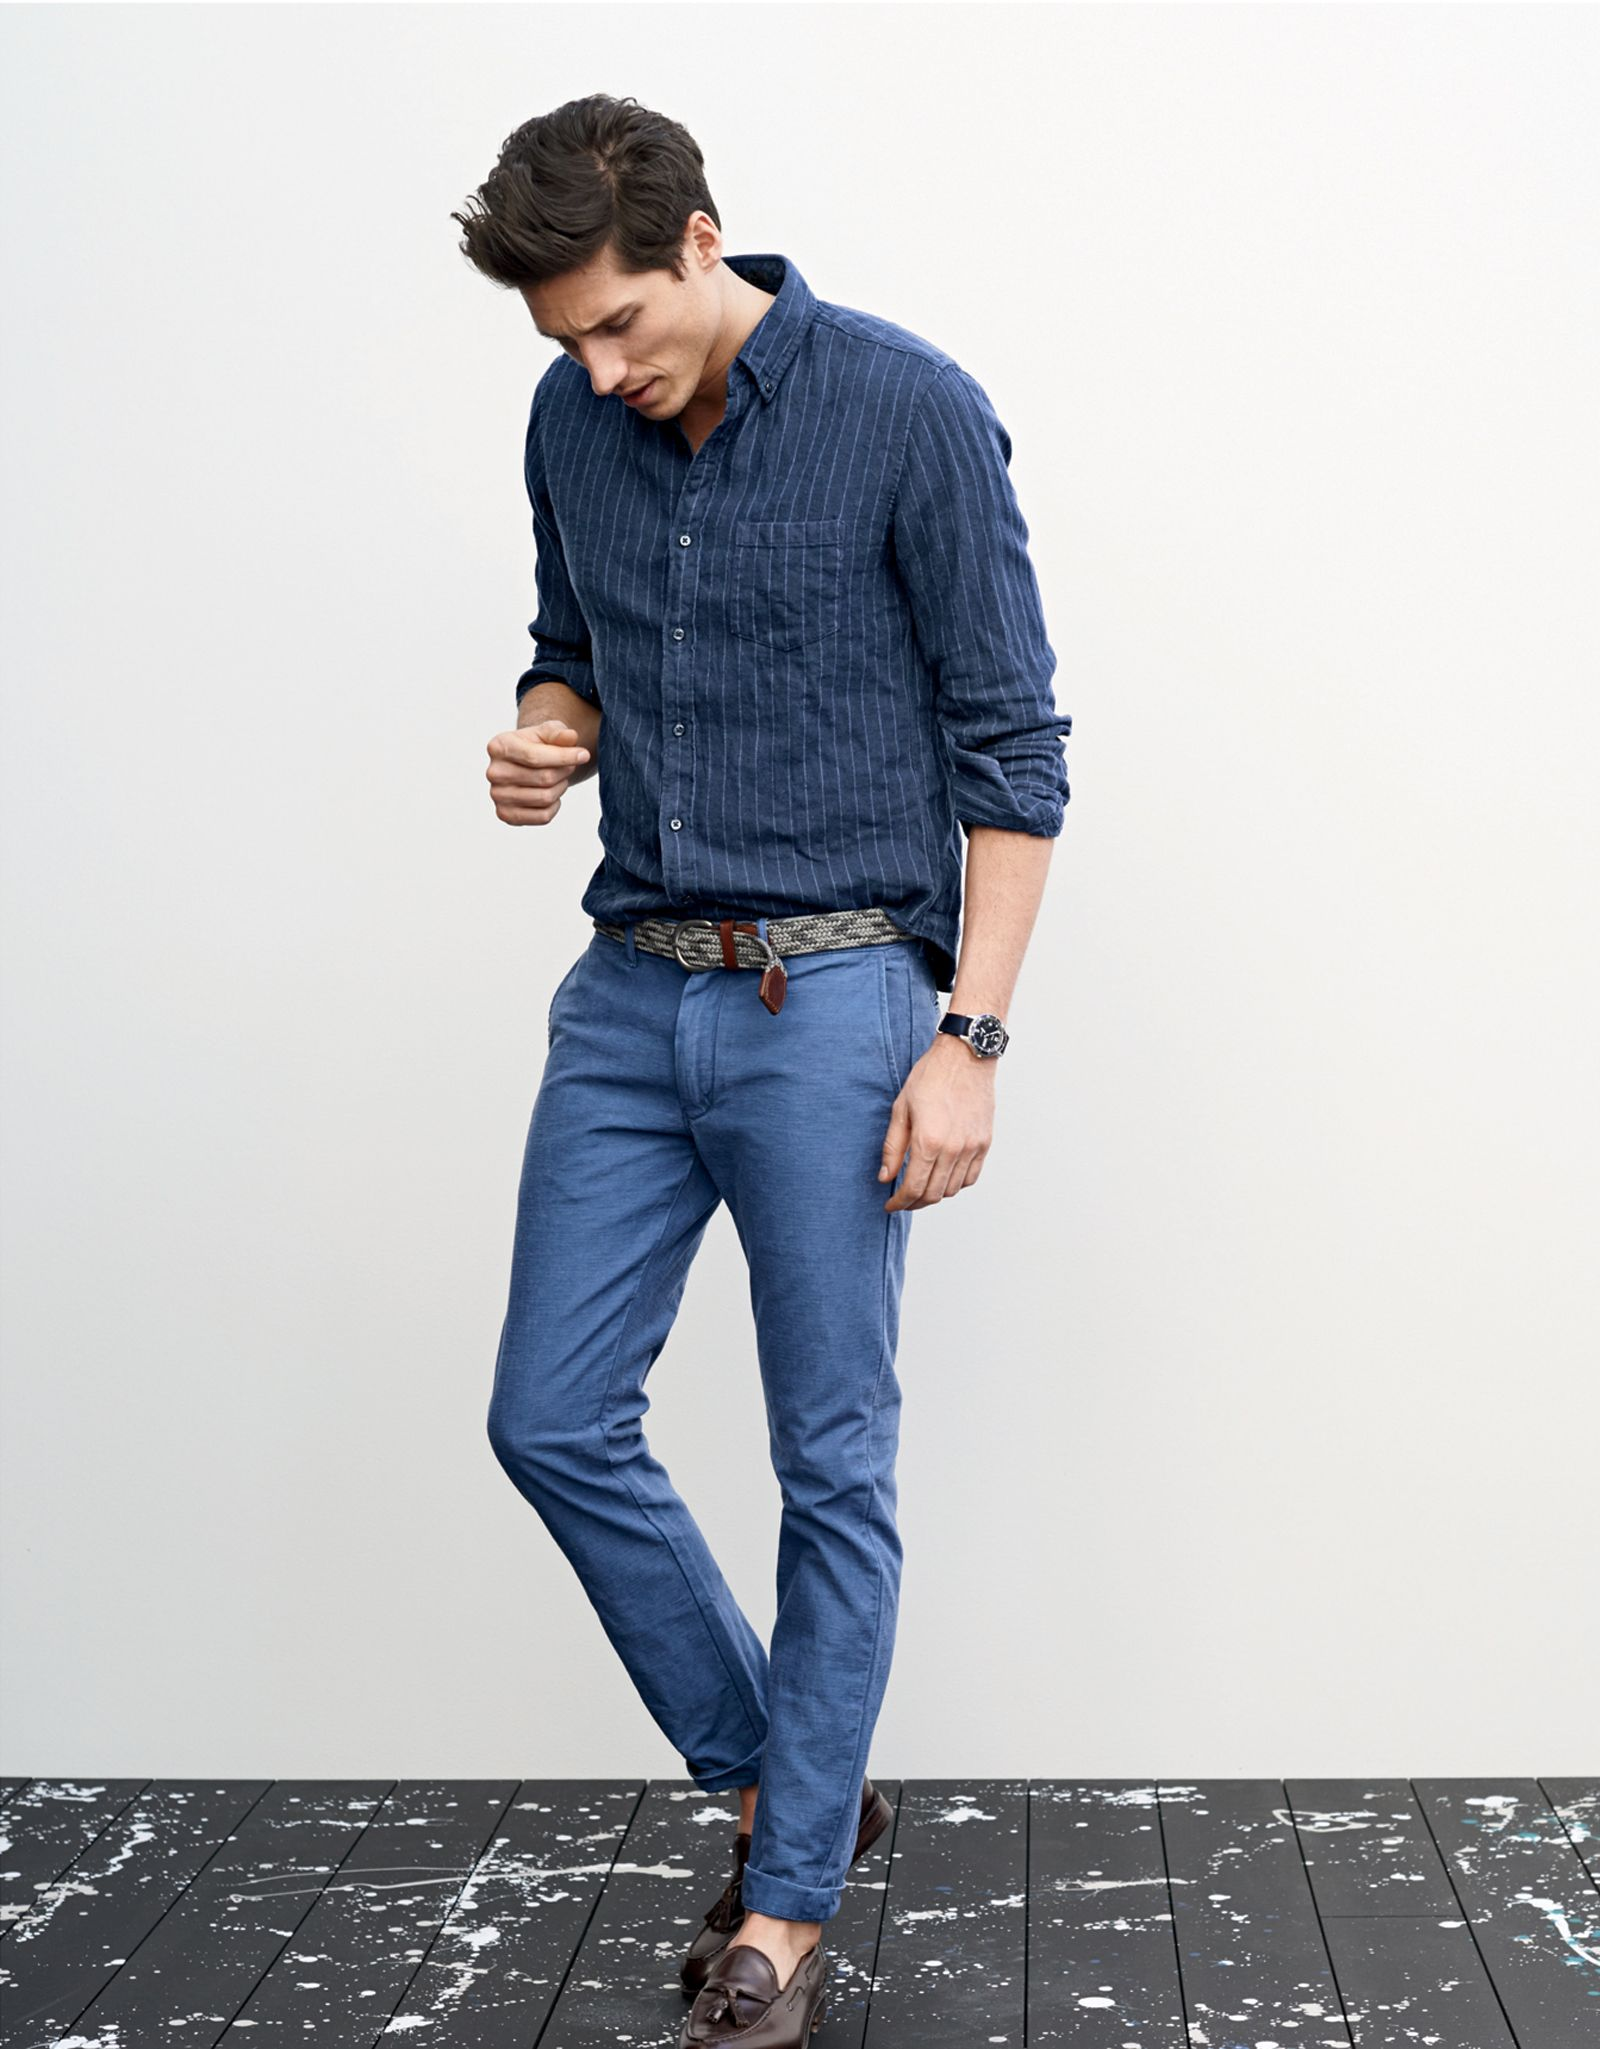 J.Crew men's slim indigo cotton-linen shirt, 484 textured cotton chino pant and Ludlow tassel loafer shoes. (May 2015)